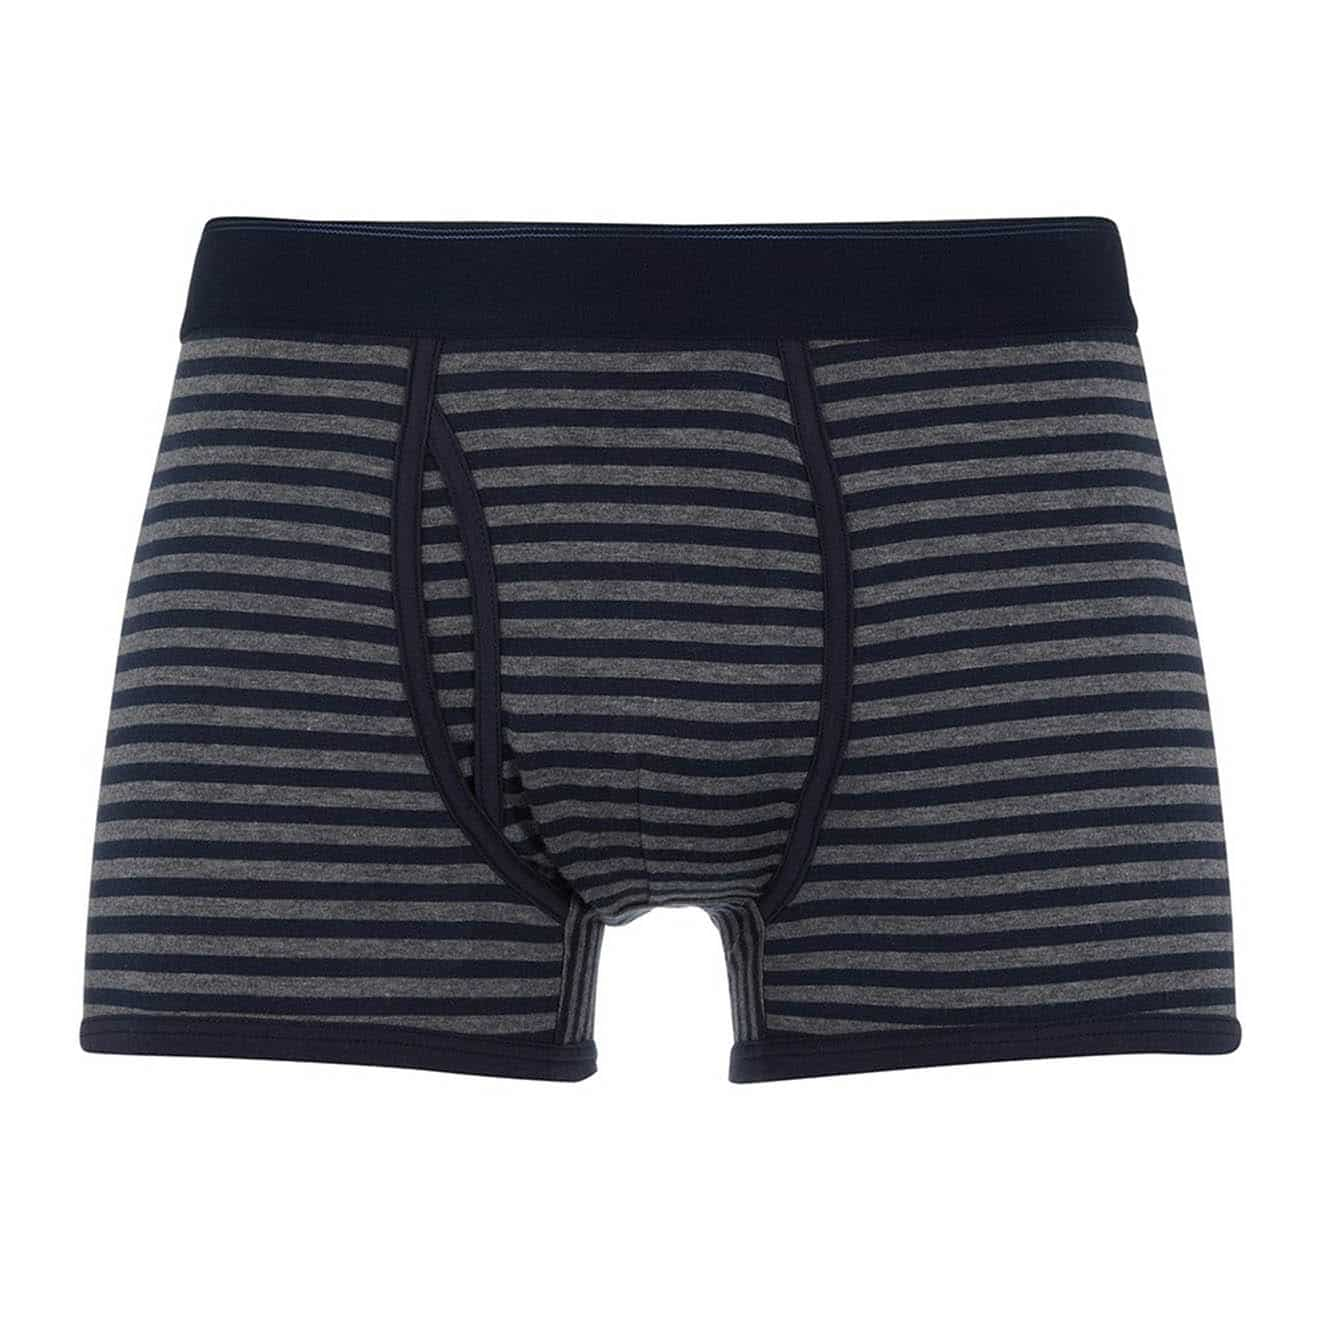 Sunspel Superfine Cotton Striped Trunks Charcoal Melange / Navy